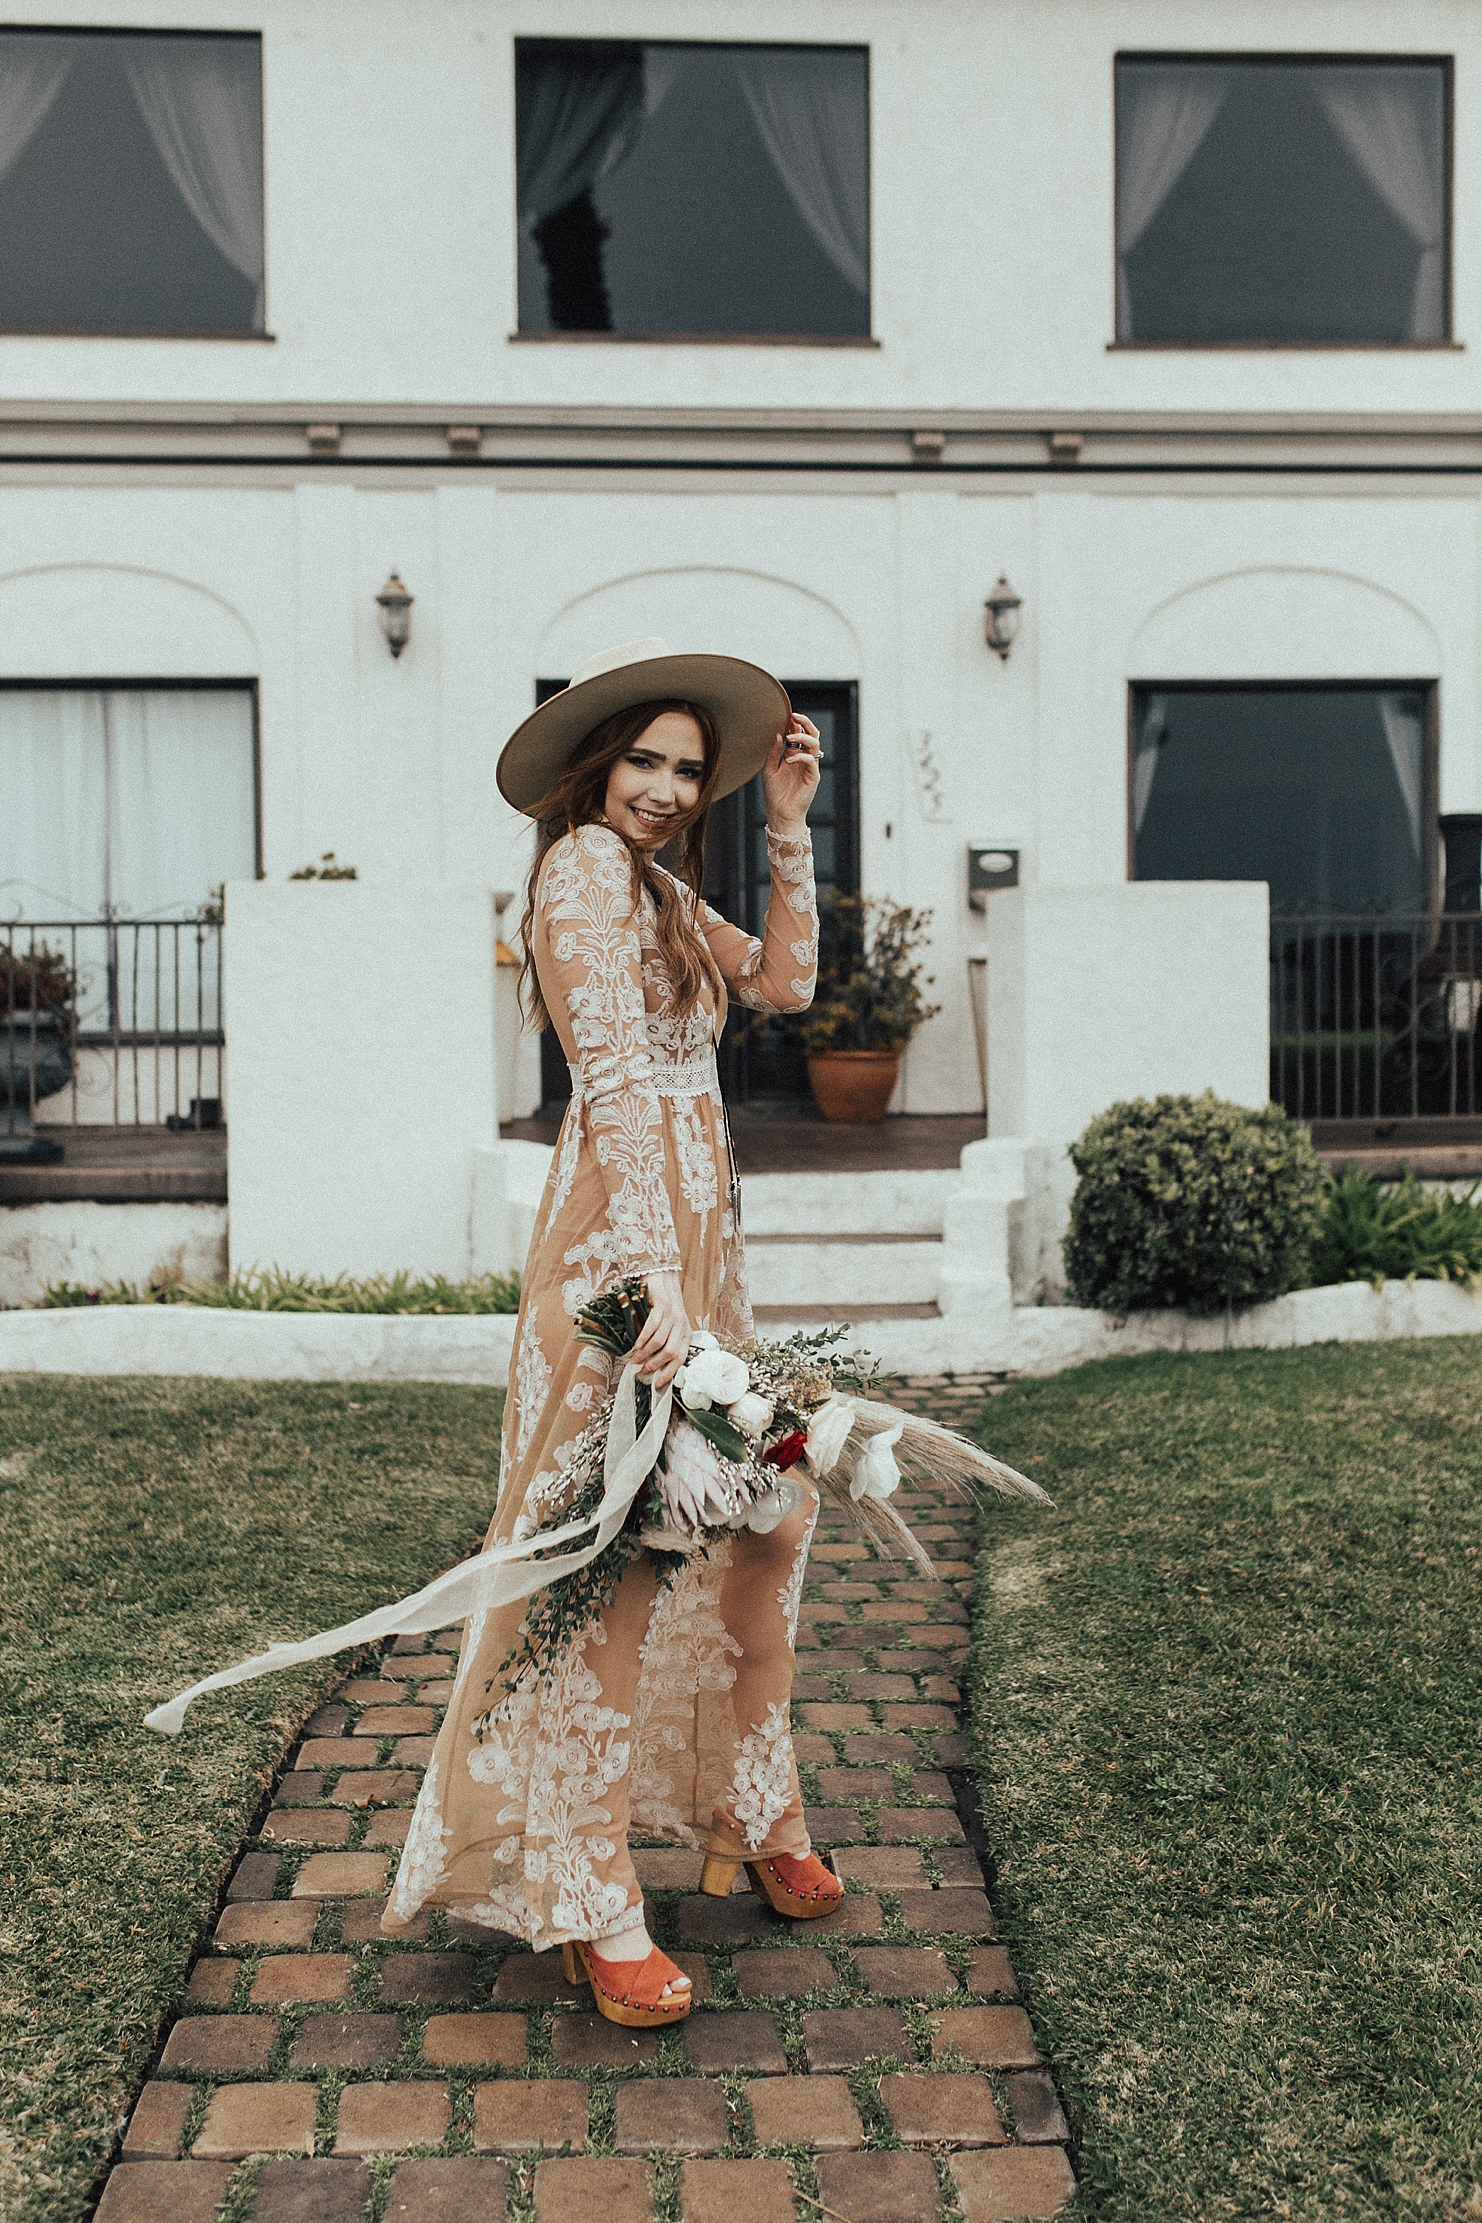 LONG BEACH ELOPEMENT INDIE BRIDE BOHO LOS ANGELES PHOTOGRAPHER RACHEL WAKEFIELD LA ELOPEMENT PHOTOGRAPHER-4.jpg